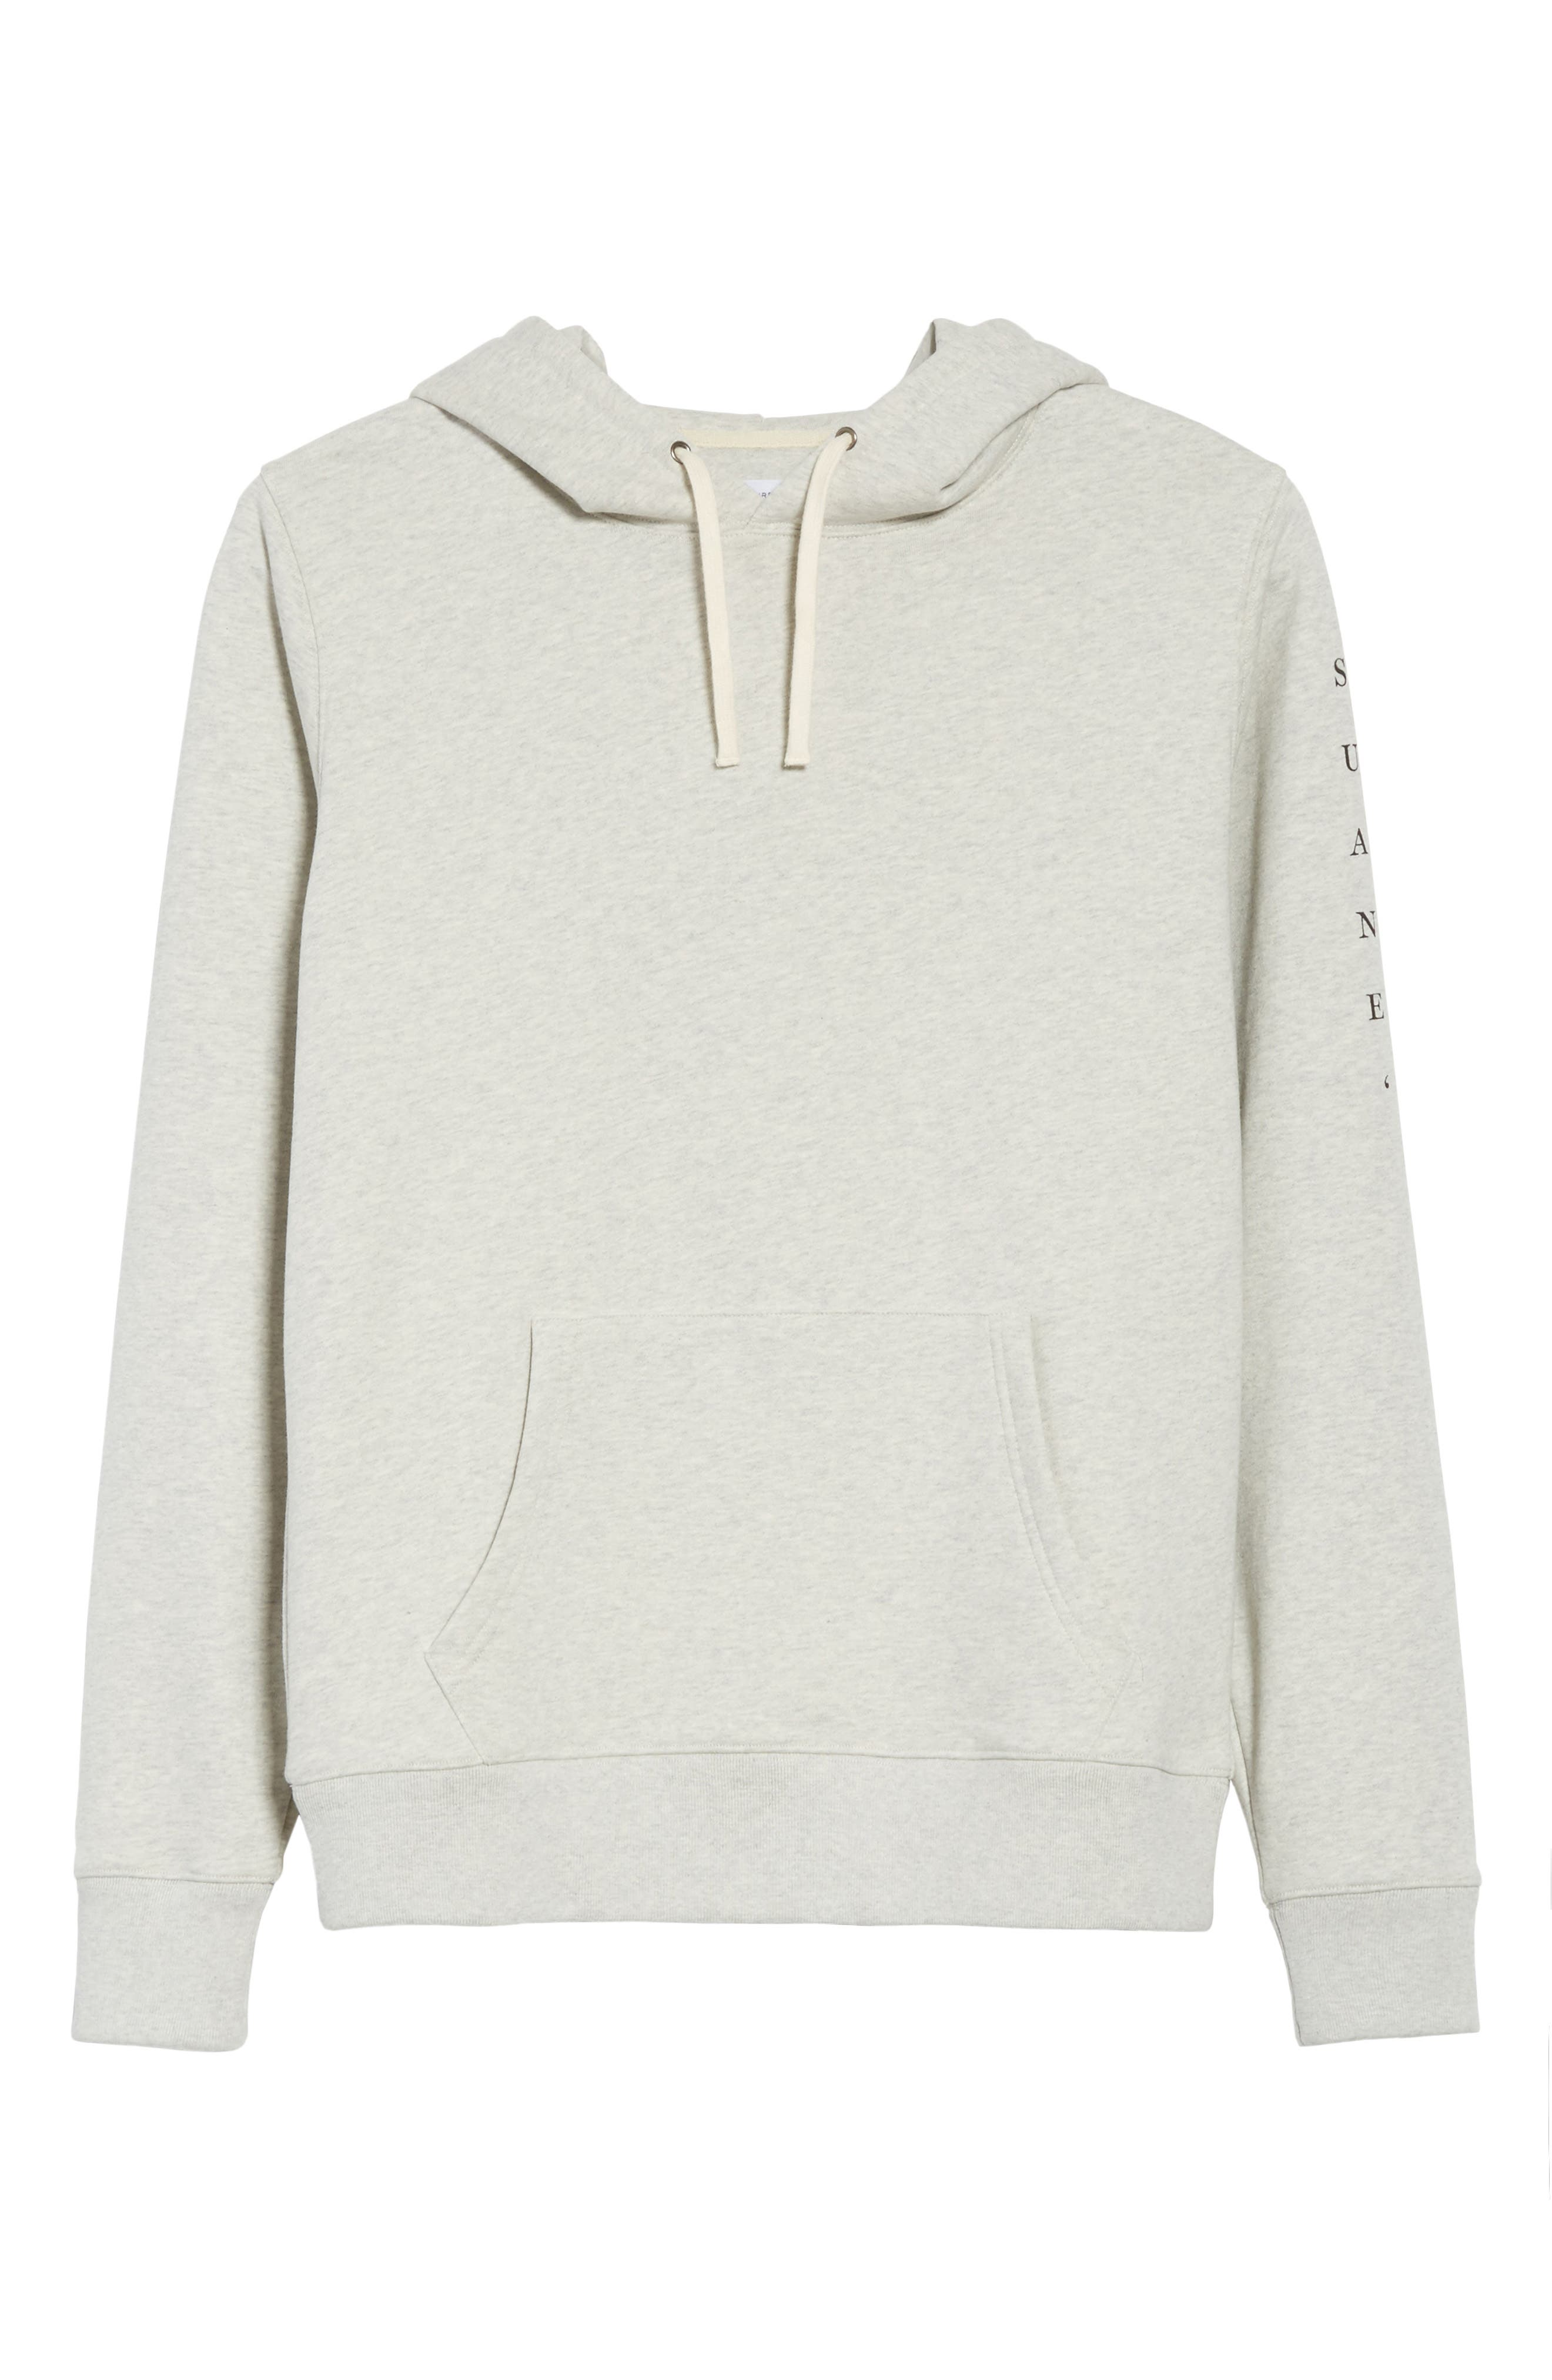 Ditch Stacked Hoodie,                             Alternate thumbnail 6, color,                             290